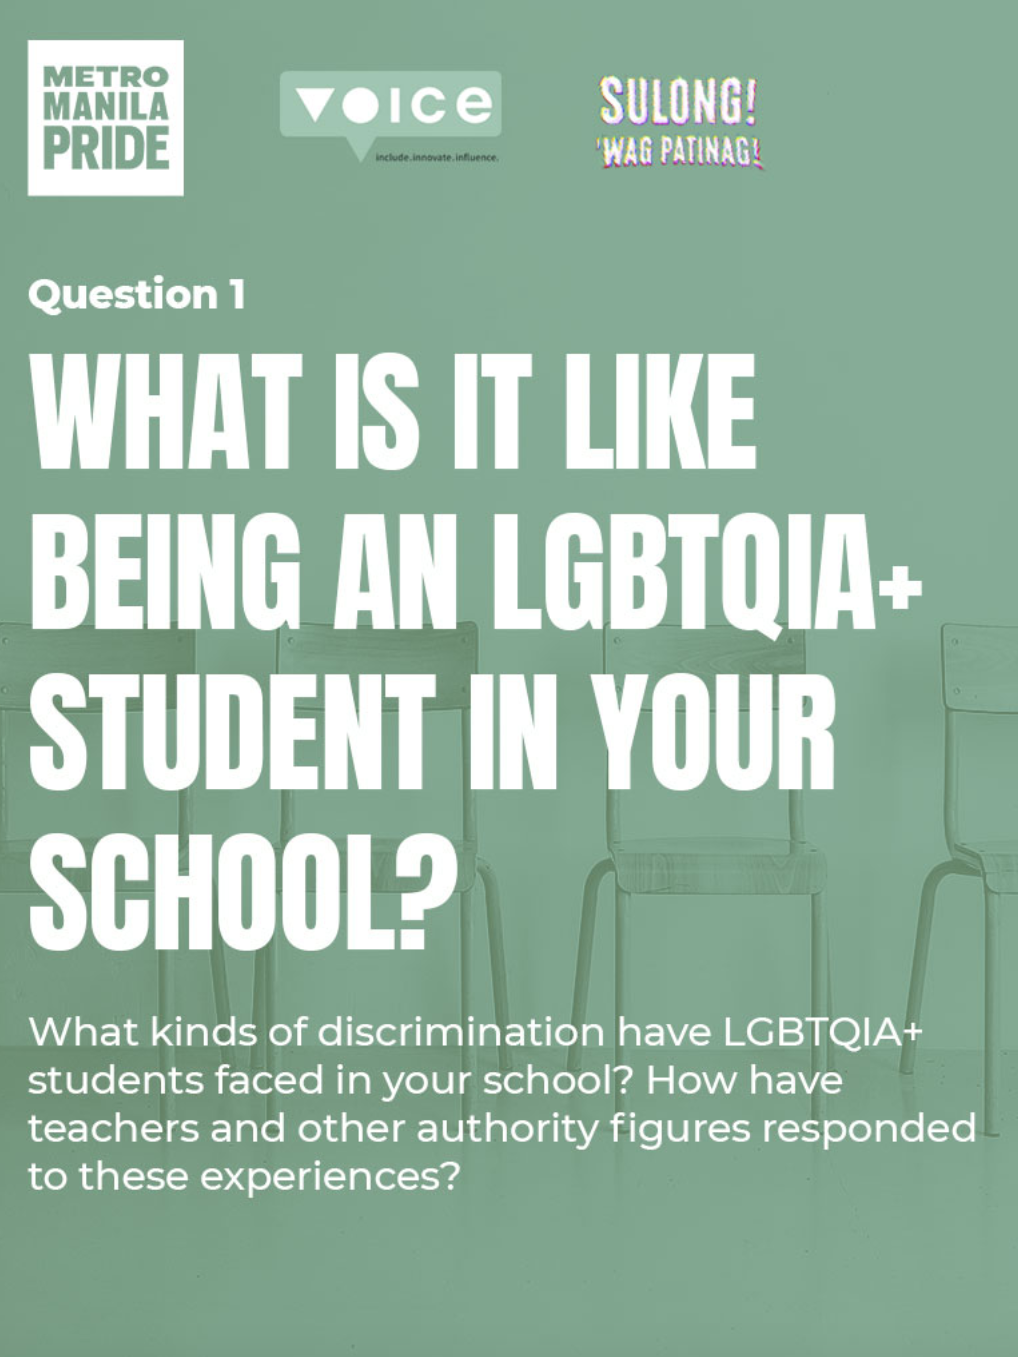 Image description: A green poster with empty school chairs in the background. On top of the poster, logos of Metro Manila Pride, Voice Global, and the 2021 Pride March and Festival are displayed. In the foreground, the following text is displayed: Question 1: What is it like being an LGBTQIA+ student in your school? What kinds of discrimination have LGBTQIA+ students faced in your school? How have teachers and other authority figures responded to these experiences?